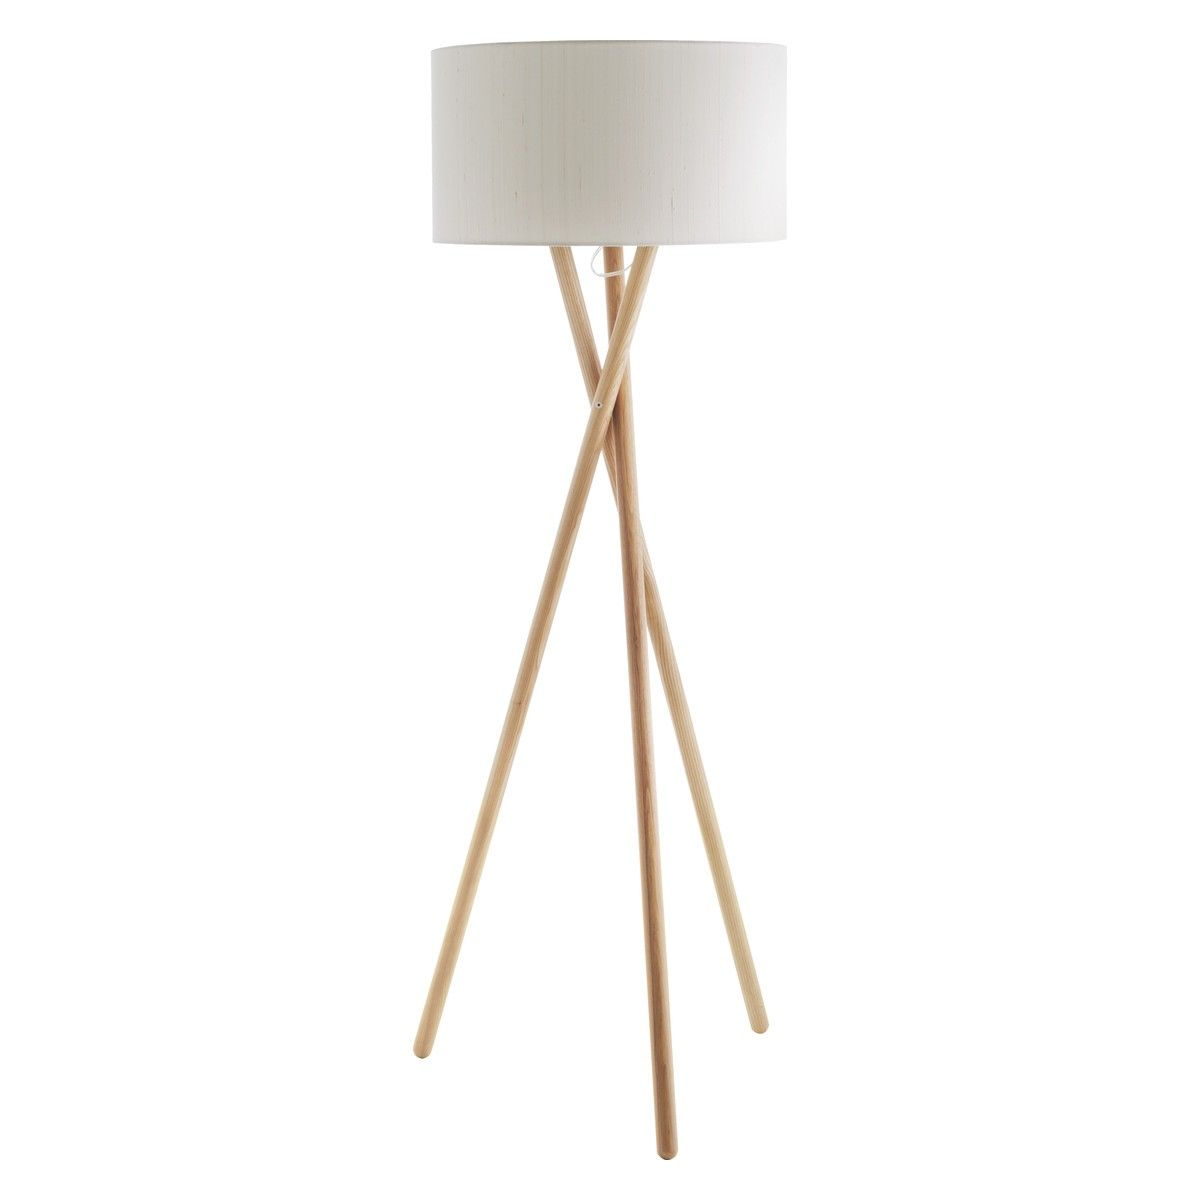 Wood floor lamp with table - Lansbury Ash Wooden Tripod Floor Lamp Base